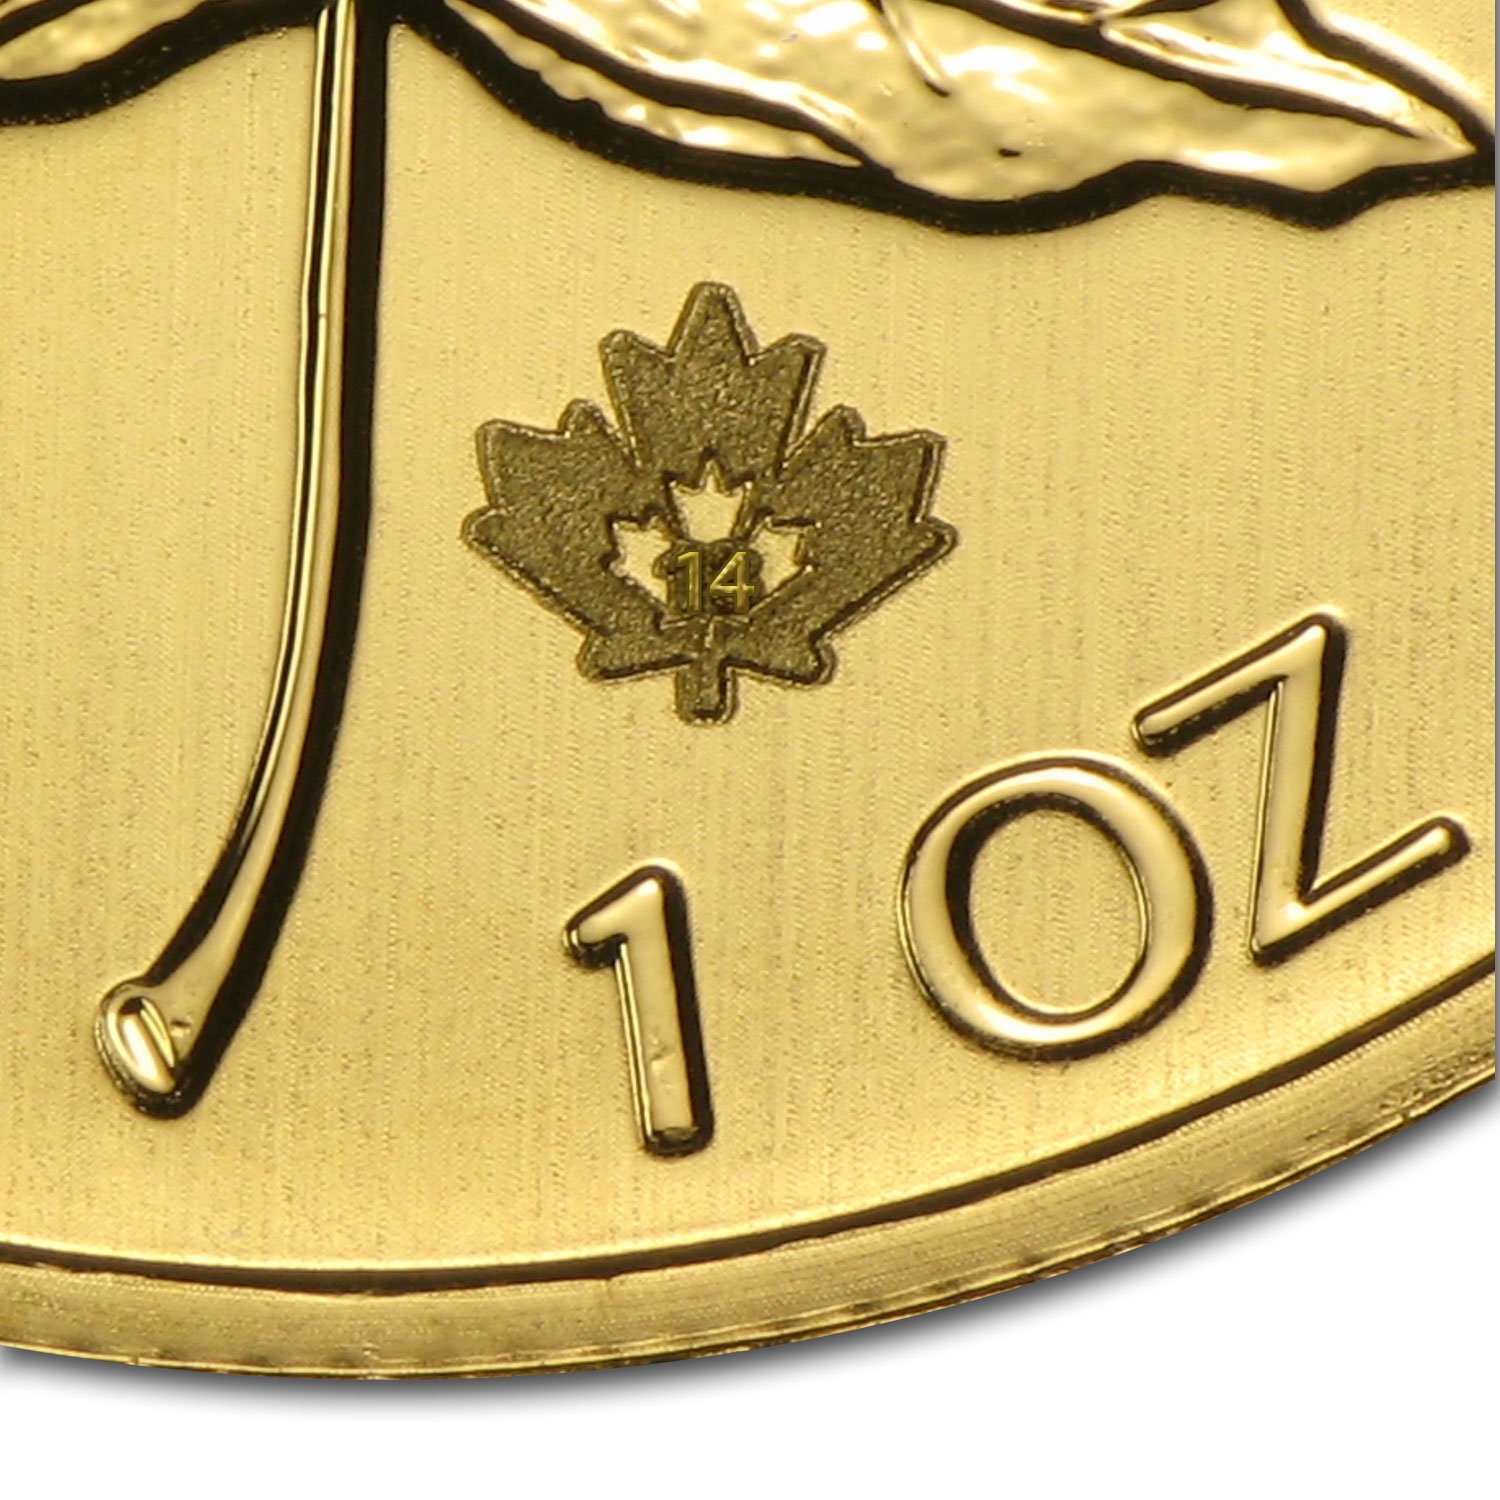 2014 1 oz Gold Canadian Maple Leaf